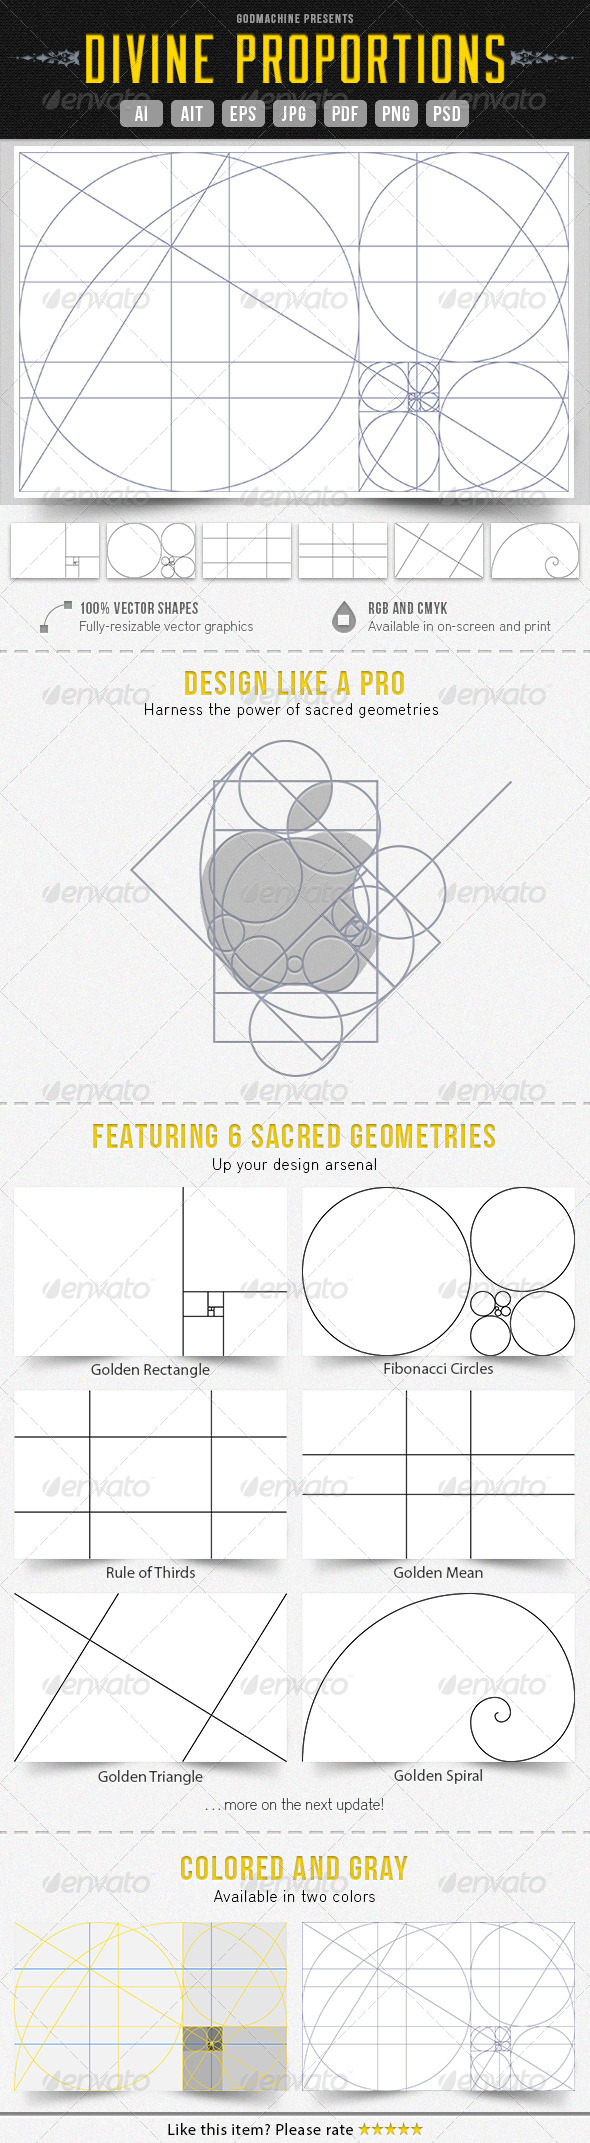 Divine Proportions - Miscellaneous Vectors